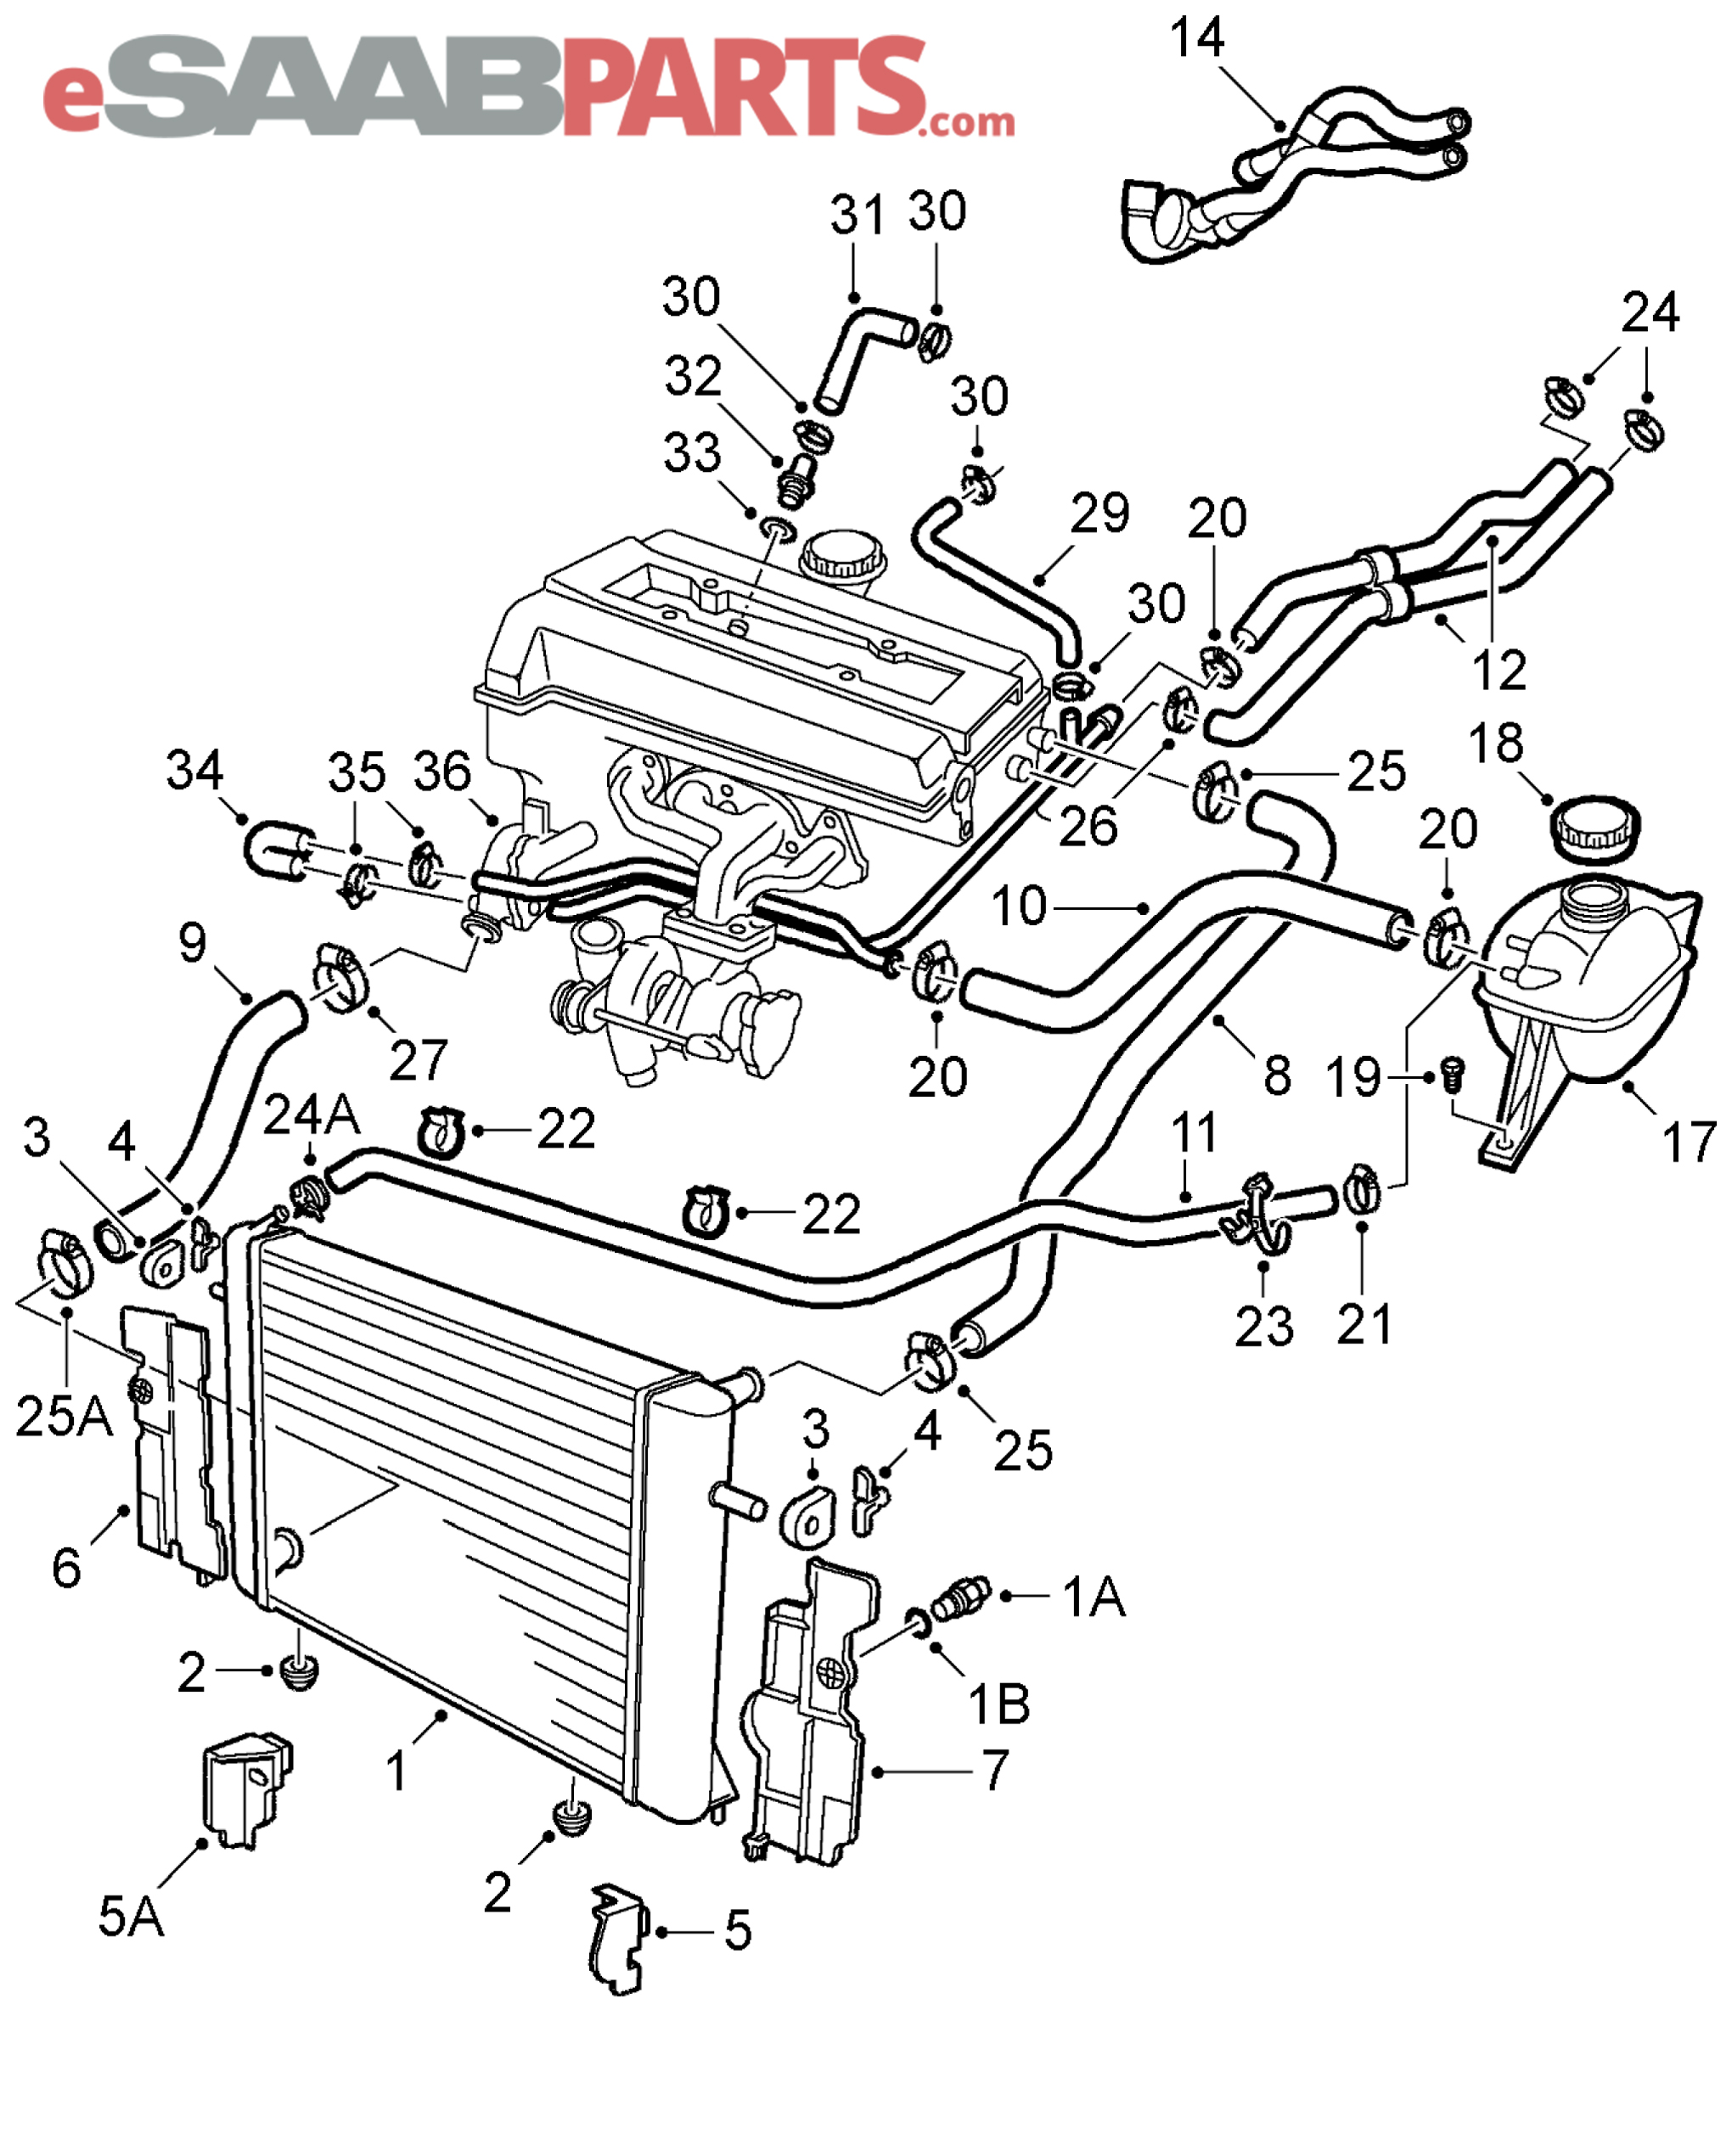 Volvo Wiring Diagrams 1990 760 Volvo 760 GLE Wire Diagrams